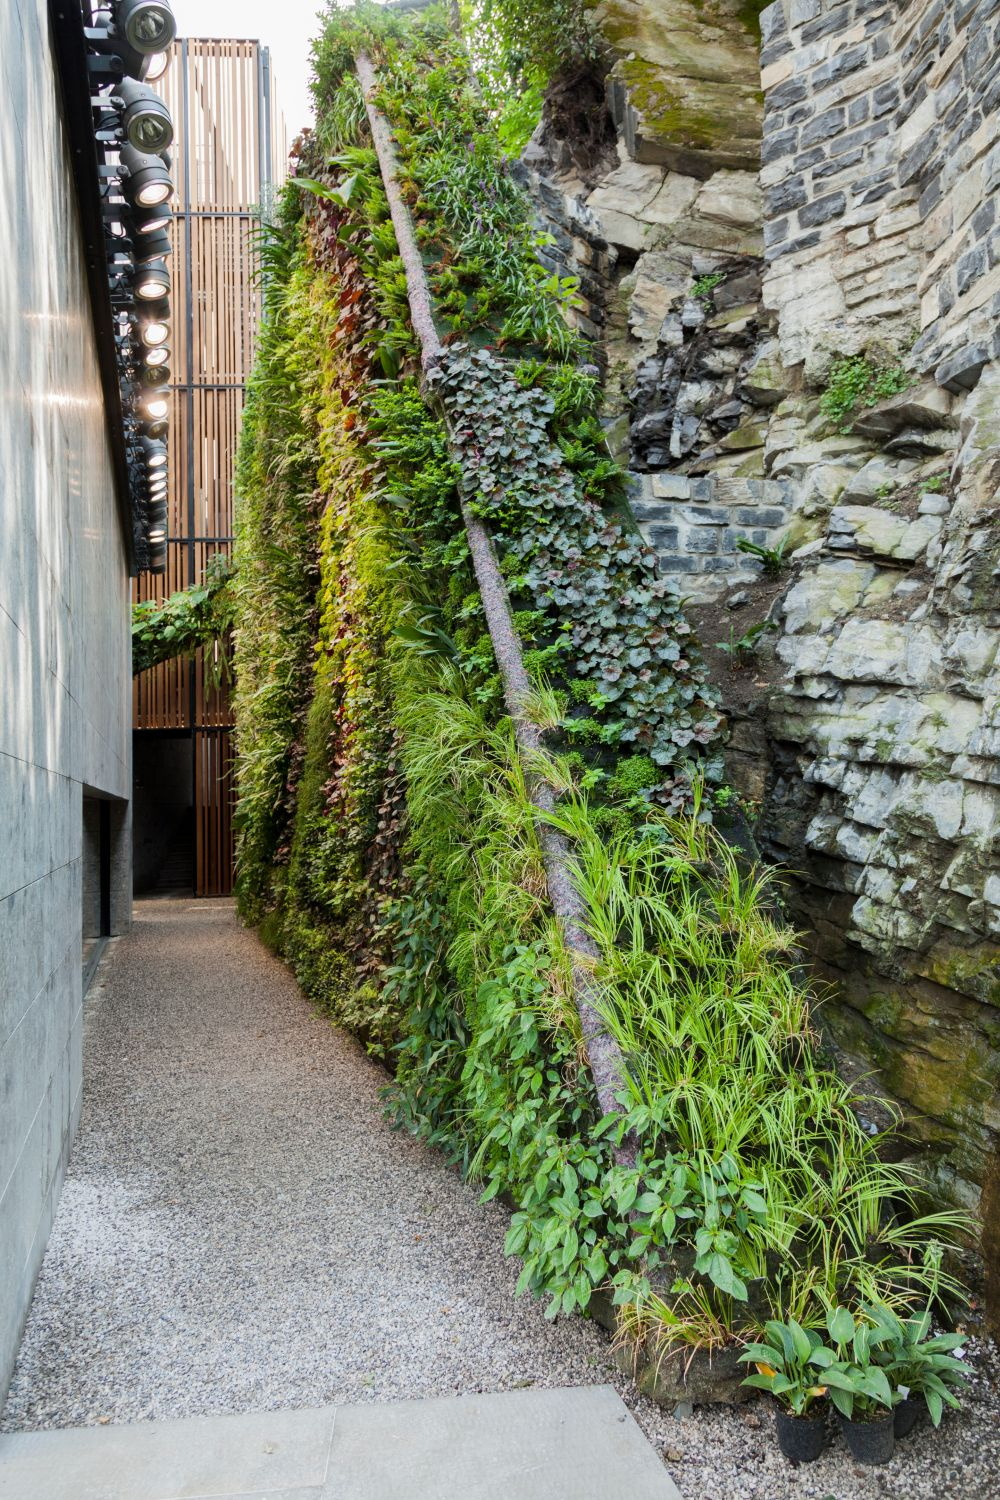 A vertical garden transforms any space into a lush environment.